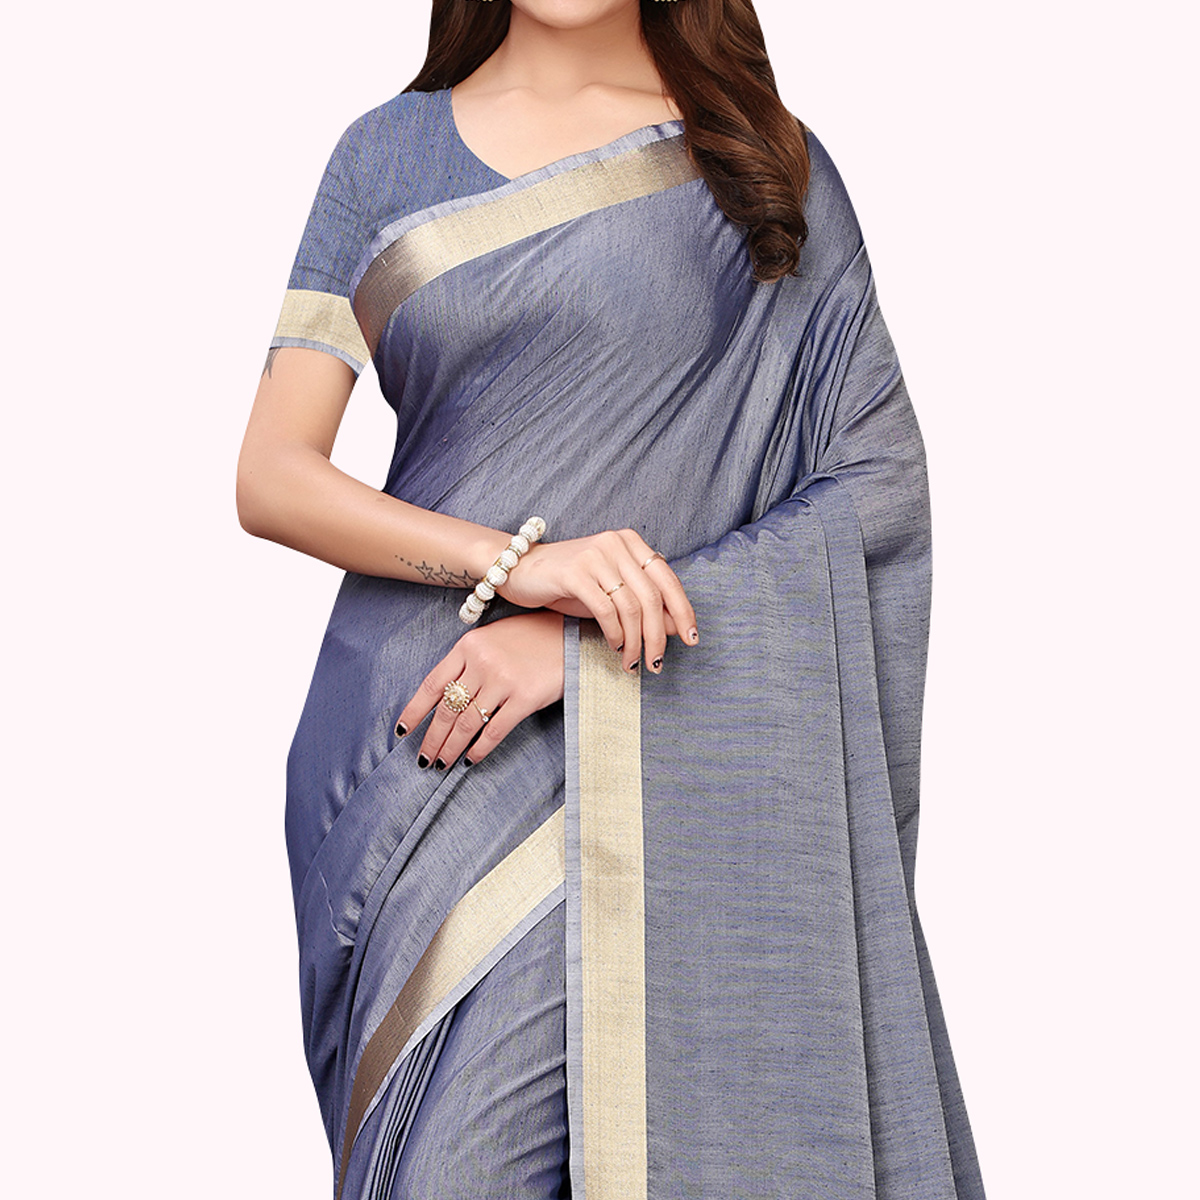 Mesmerising Slate Blue Colored Festive Wear Cotton Linen Saree